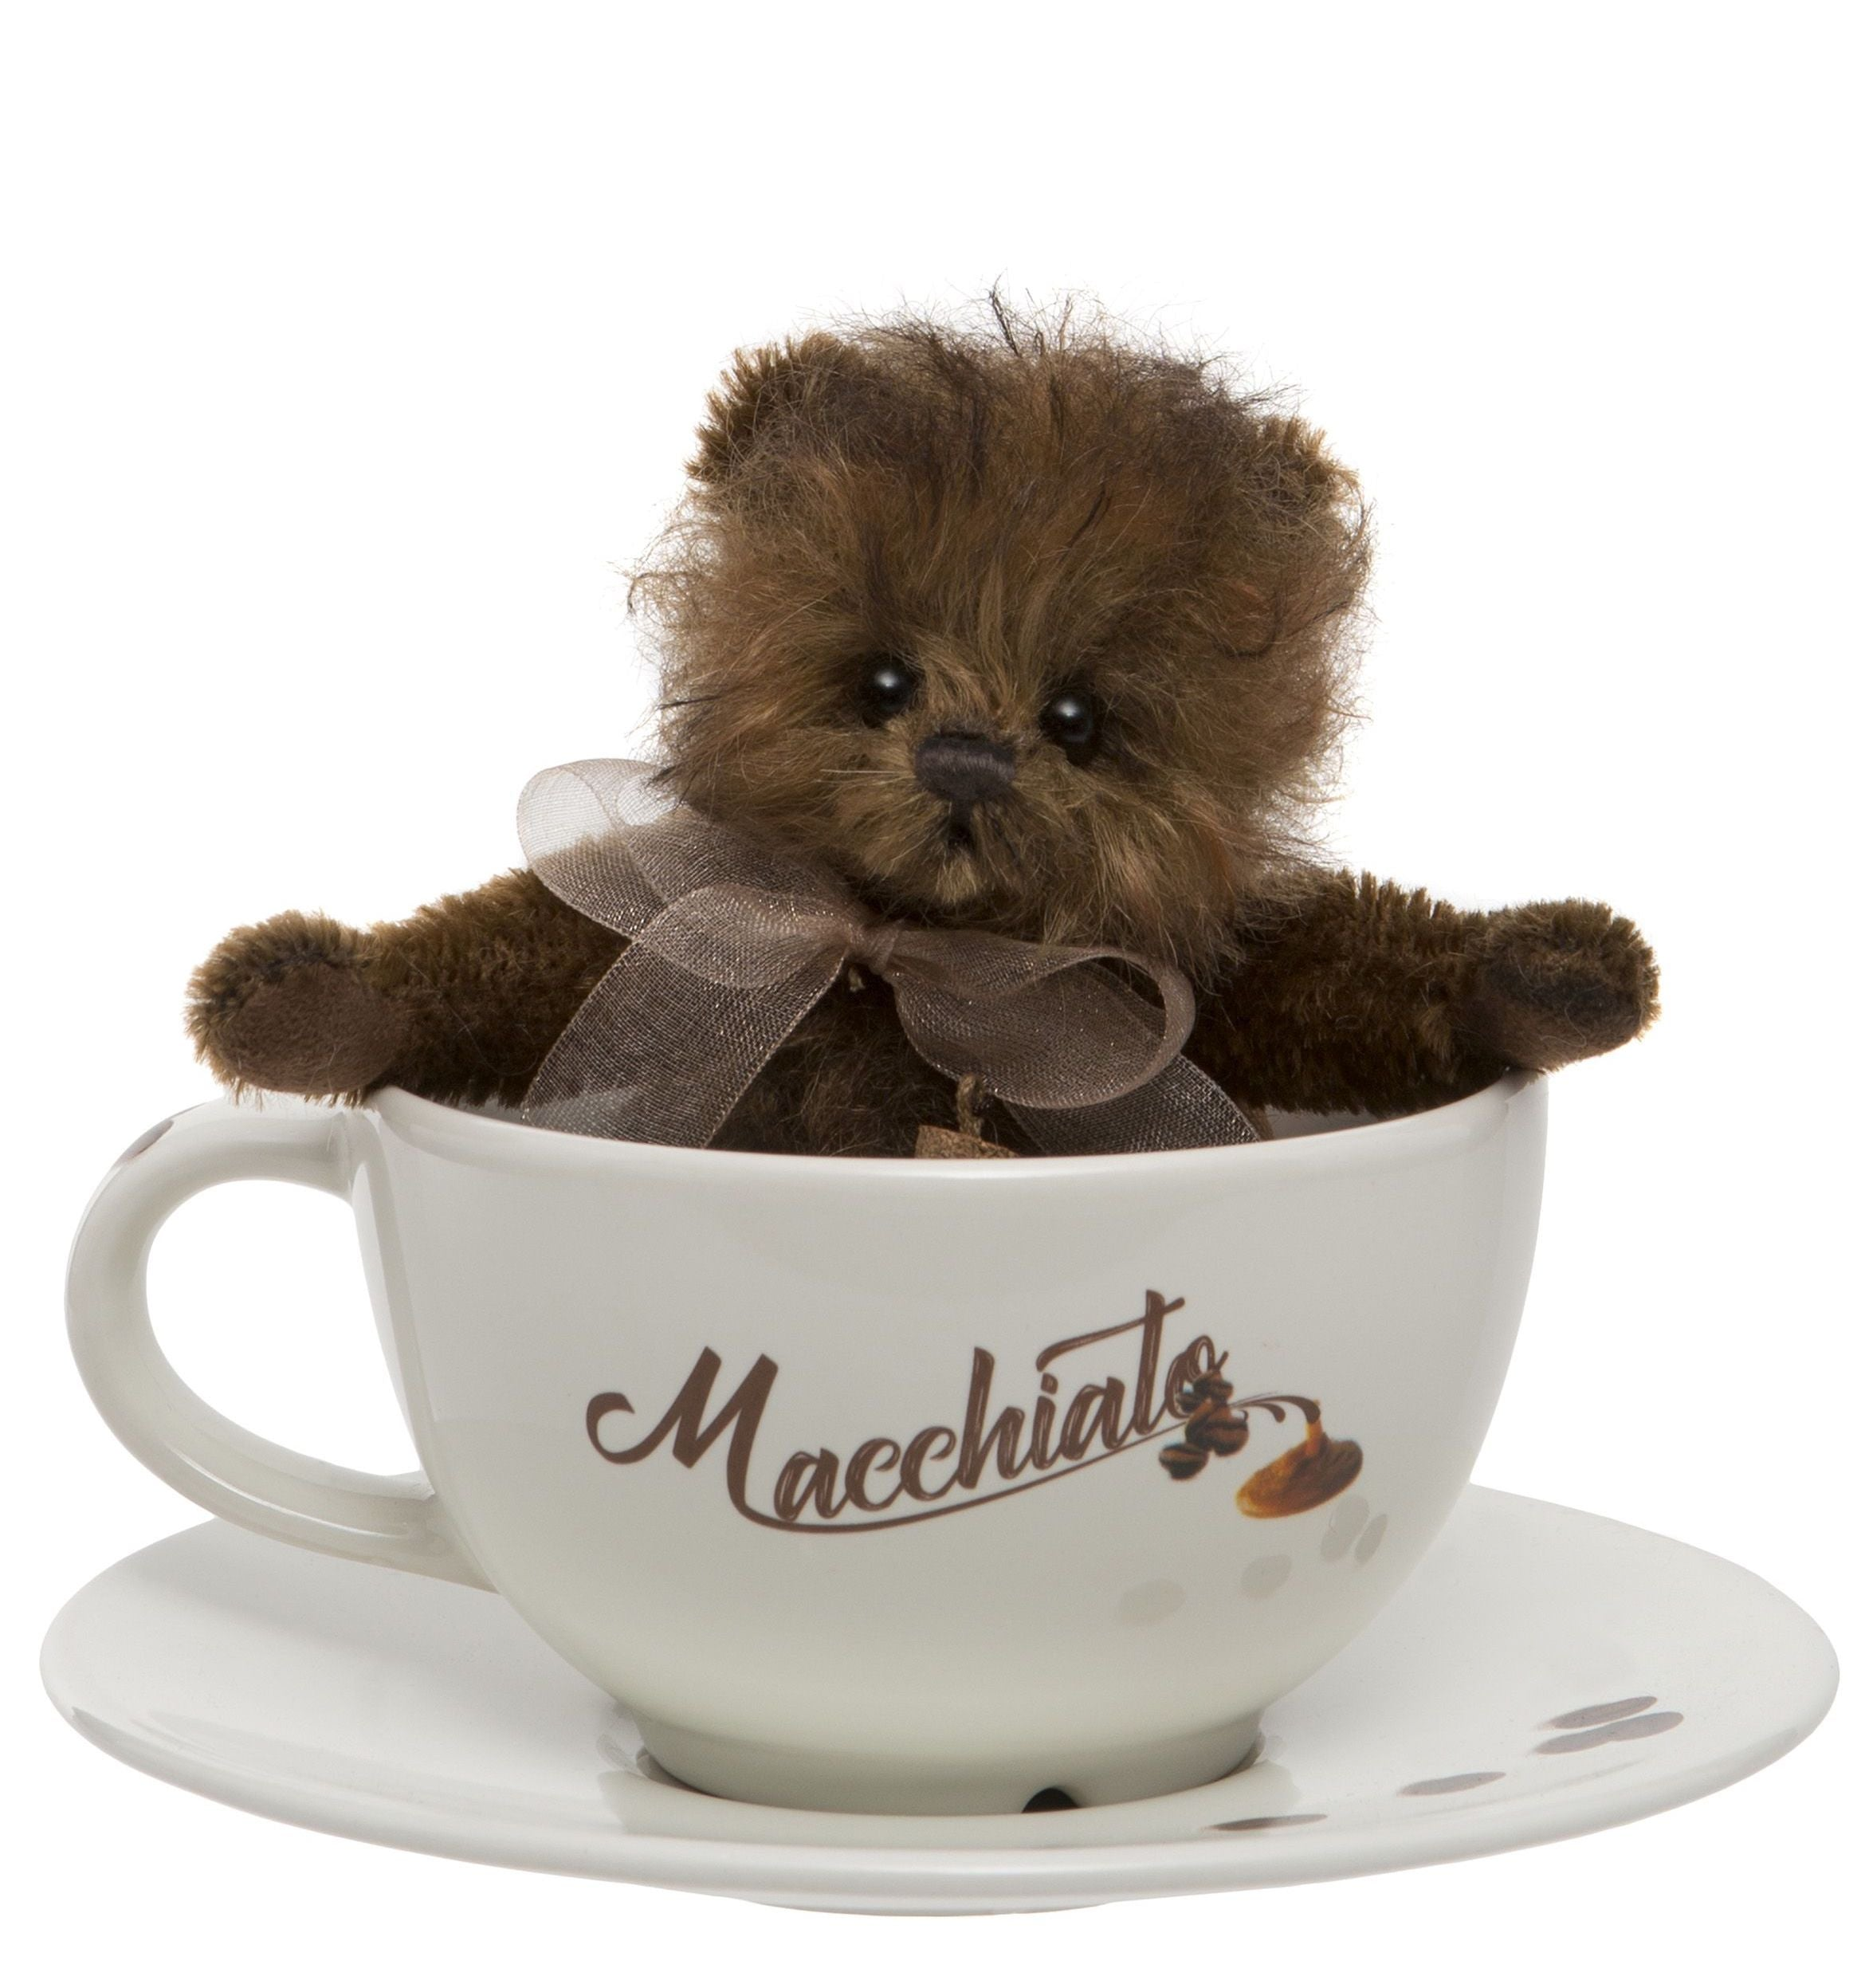 Charlie Bears Macchiato Teddy Bear Cup and Saucer Gift Set